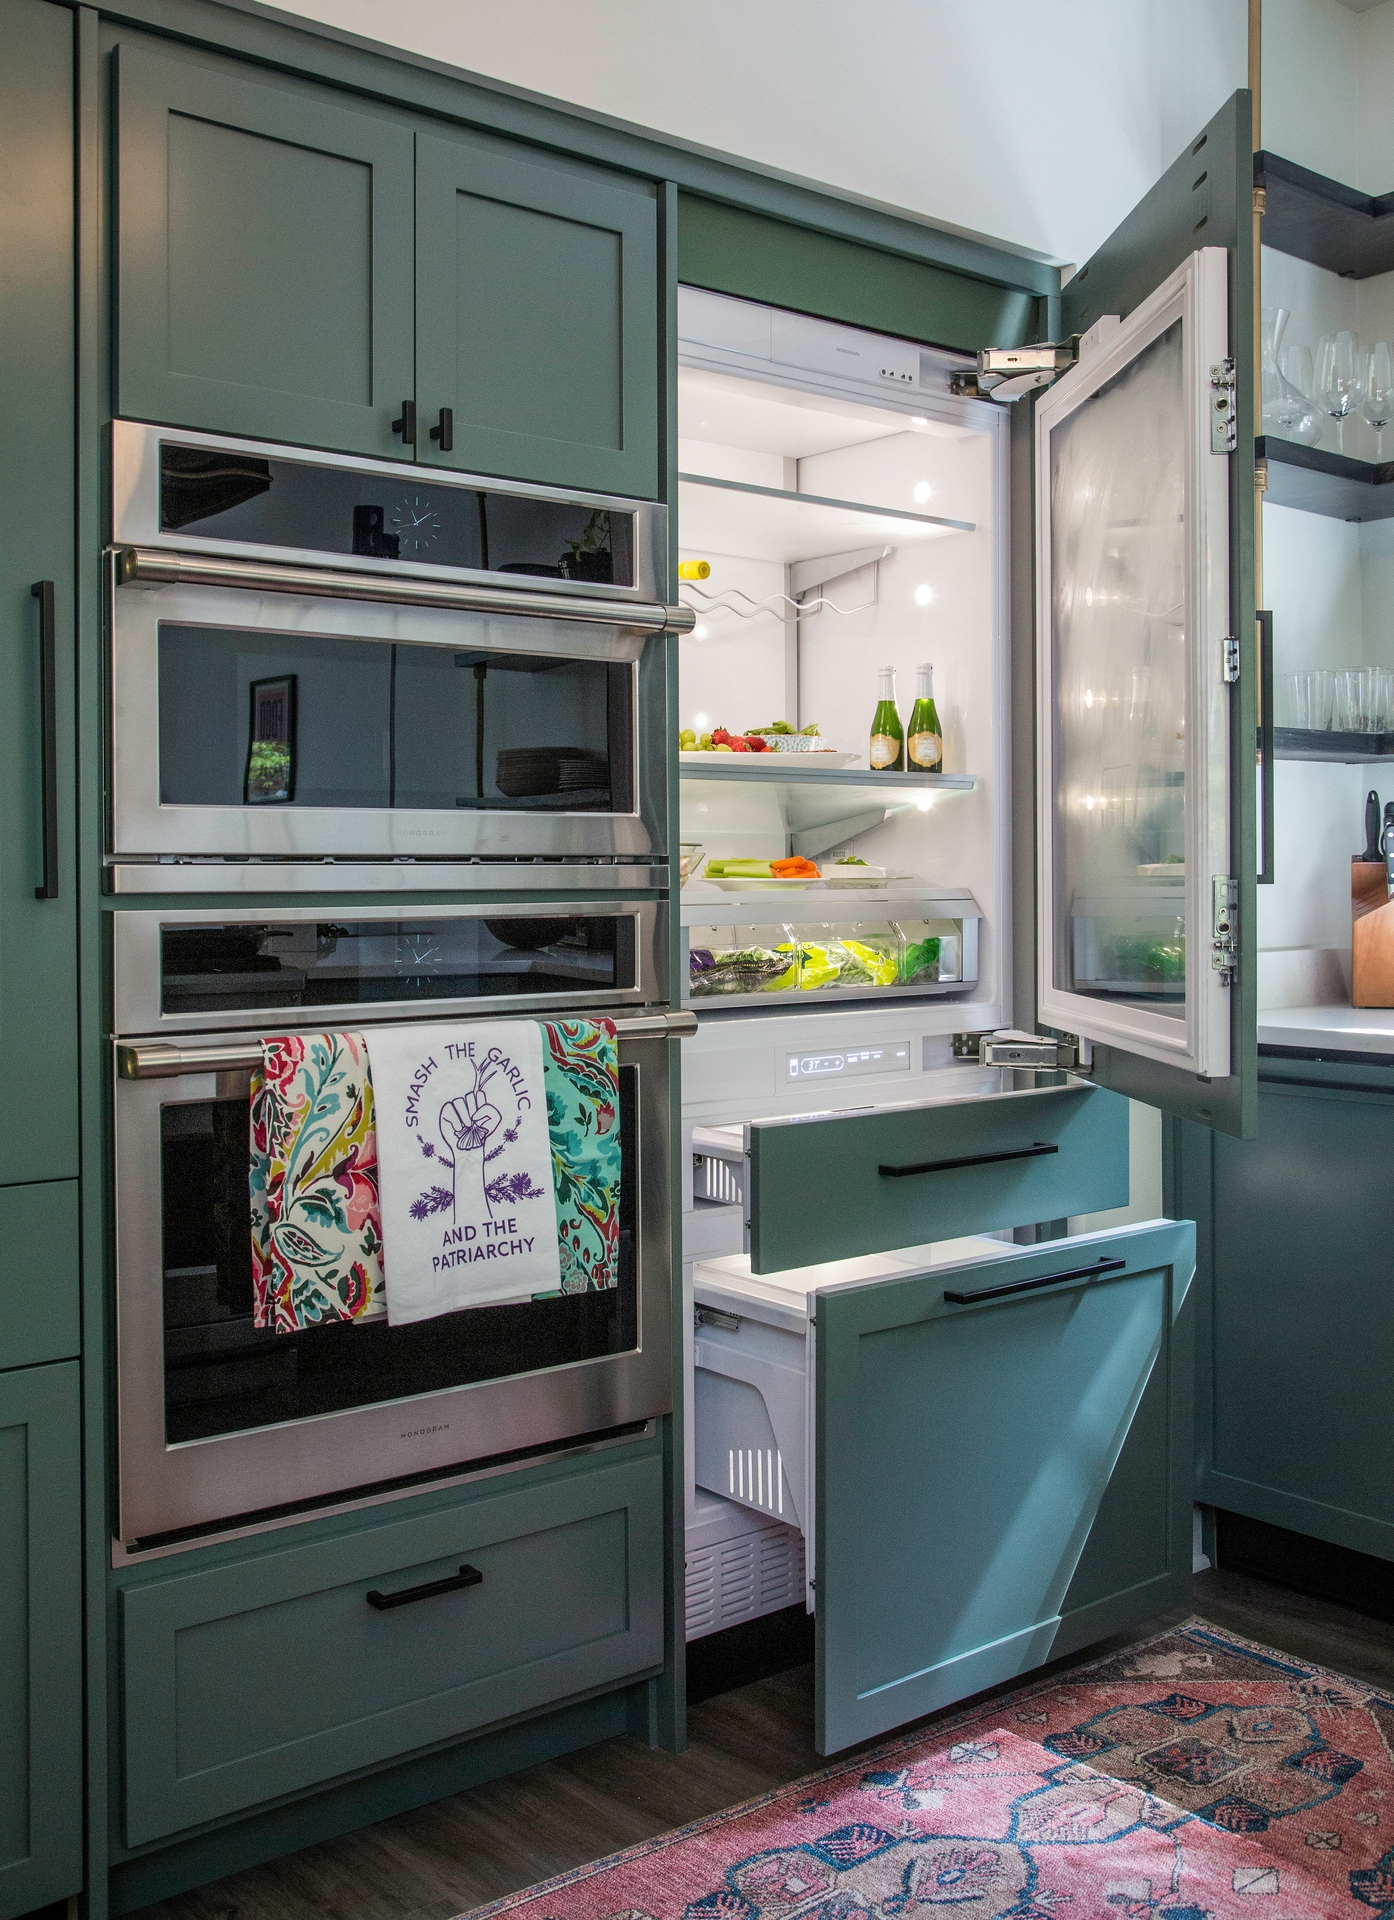 As part of the partnership, Monogram designed the kitchen layout for The LEE Initiative and donated a full suite of its latest professional appliances to be used by the visiting chefs when they are in town for instruction from Chef Edward Lee.